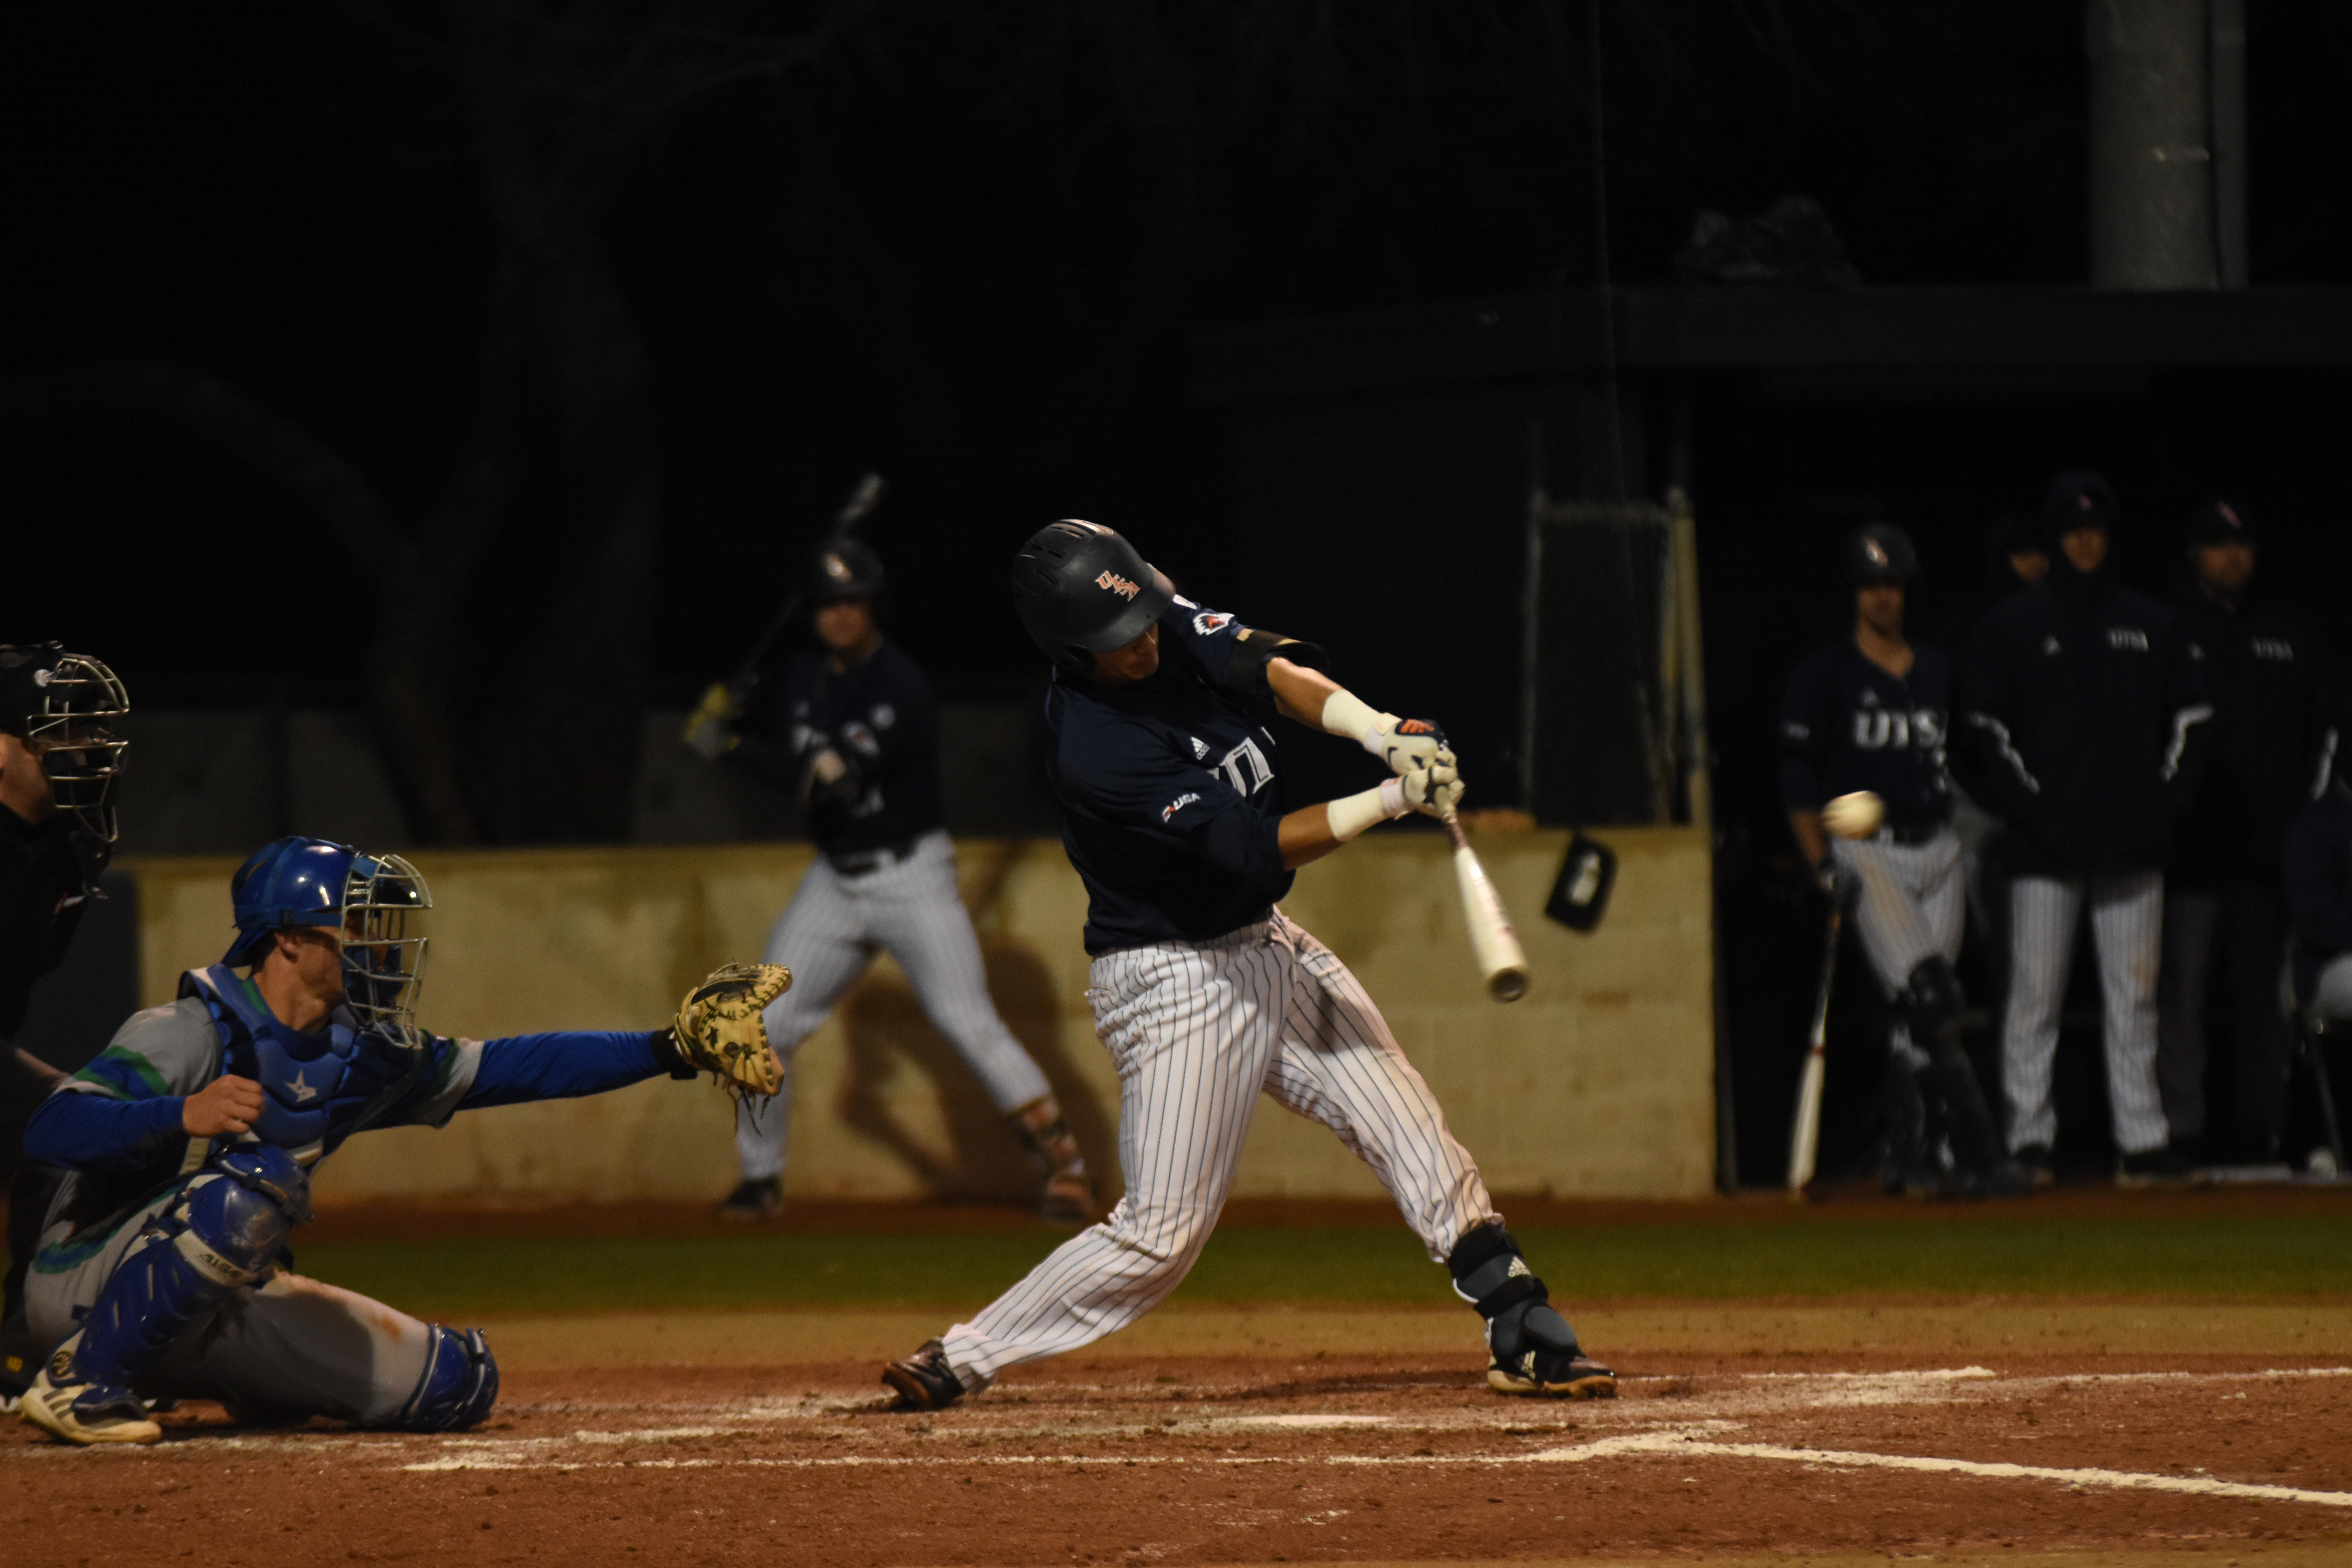 Bryan Arias takes a swing at a pitch. Jack Myer/The Paisano